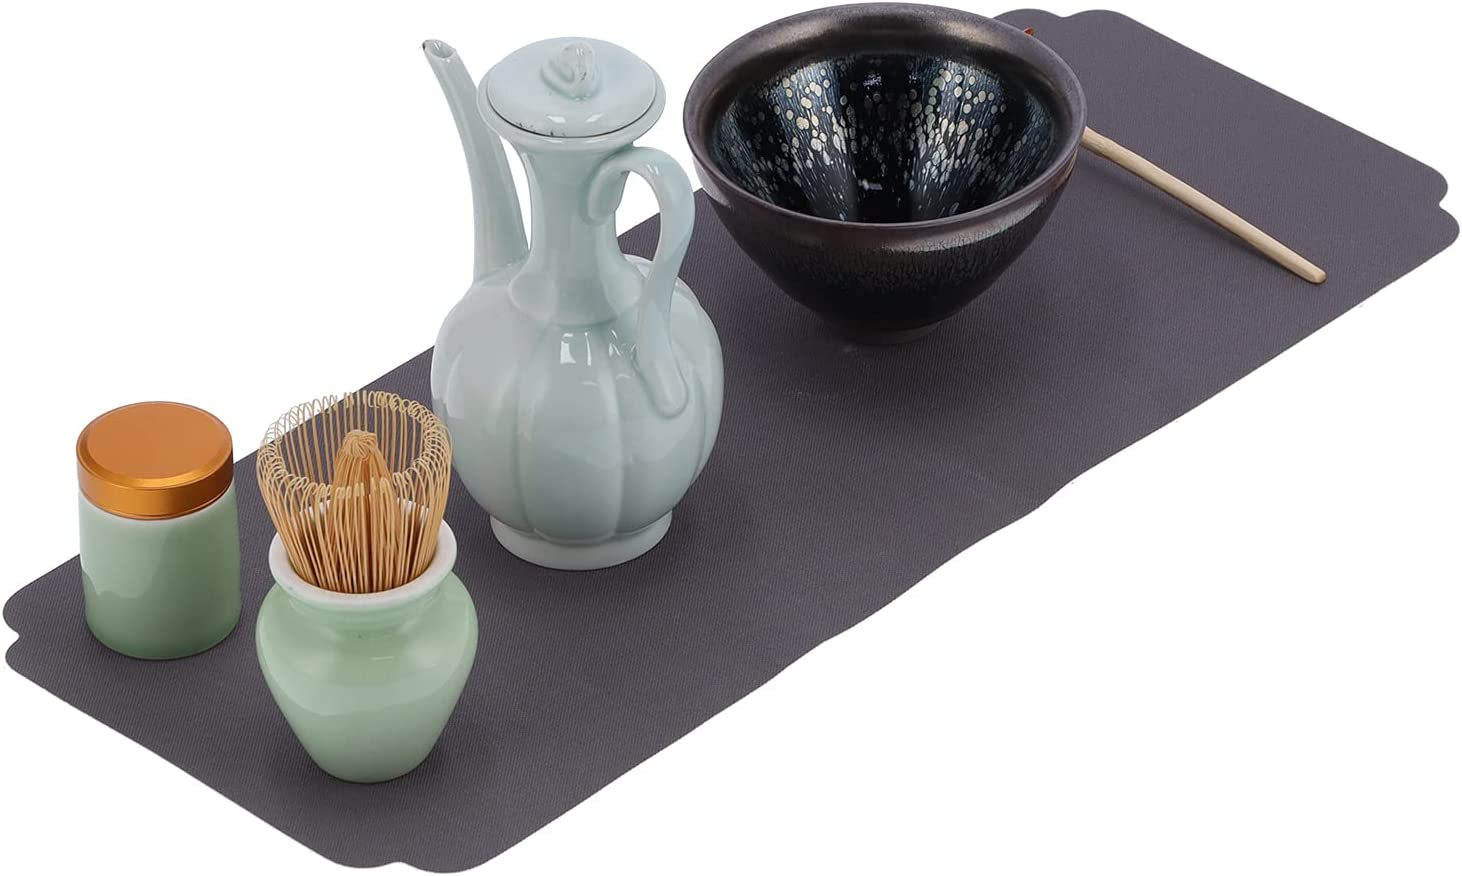 BOTEGRA Ranking TOP16 Matcha Beauty products Tea Set Caddy Whisk Mat Scoop Teacup